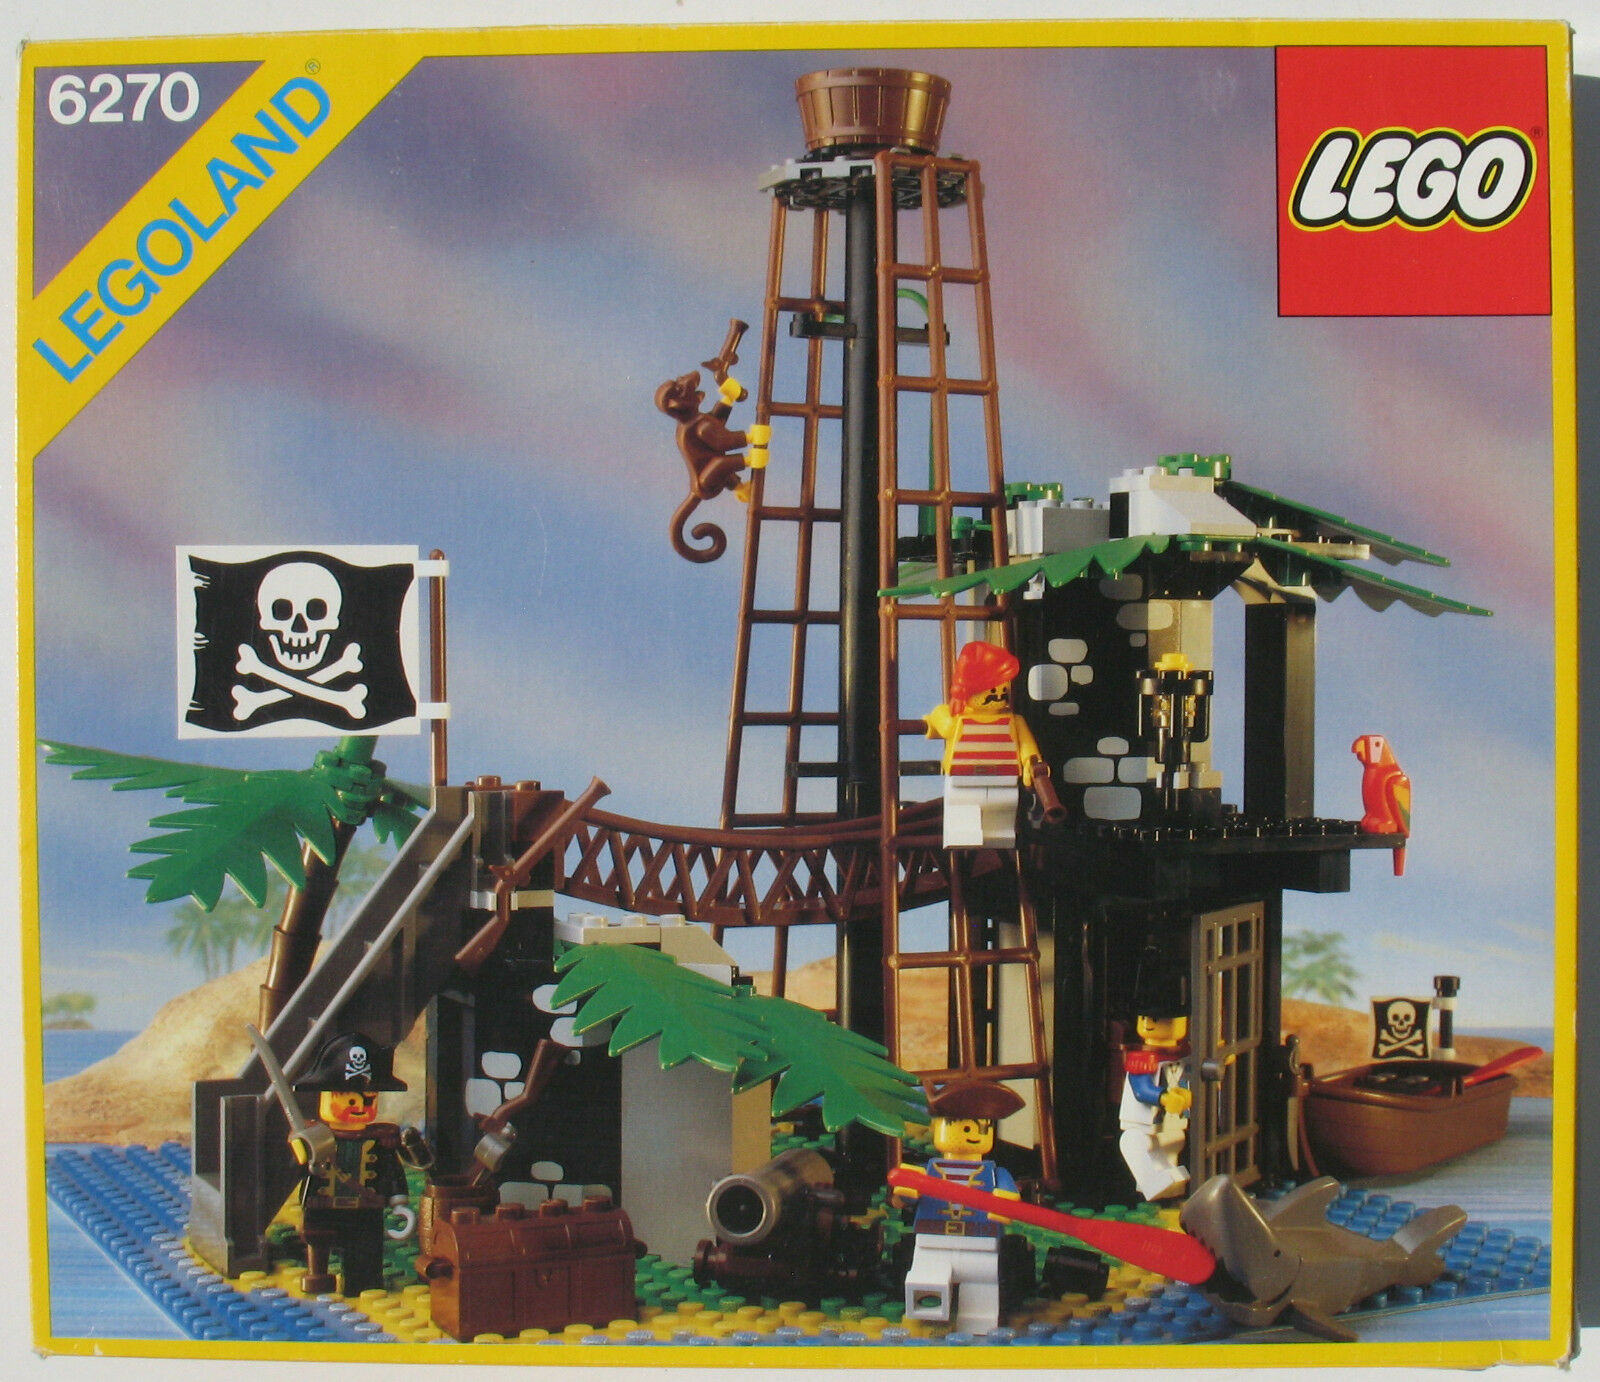 LEGO 6270 - - -  Pirateninsel - Forbidden Island - Piraten - in OVP / Box - 1989 ca3914